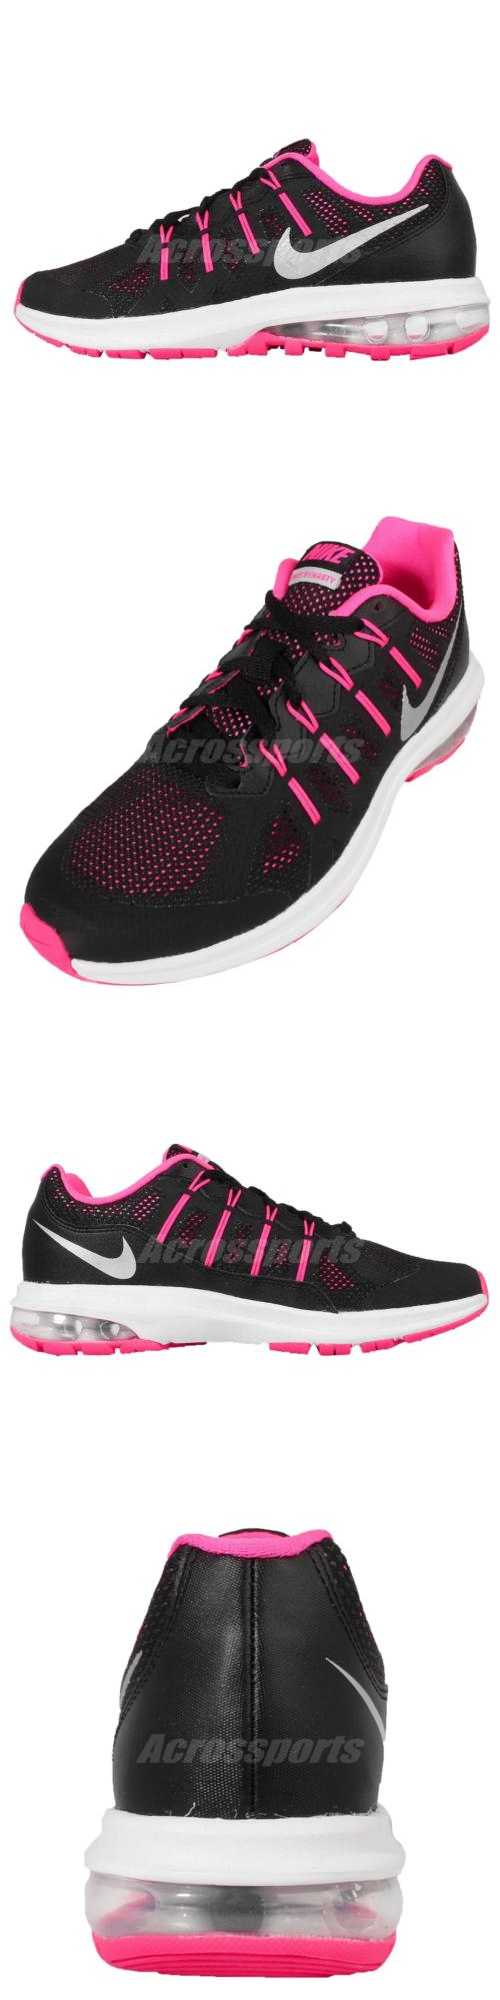 21de933de1f55 Youth 158954  N I K E Air Max Dynasty Gs Black Pink Kids Youth Running Shoes  Nwob 820270